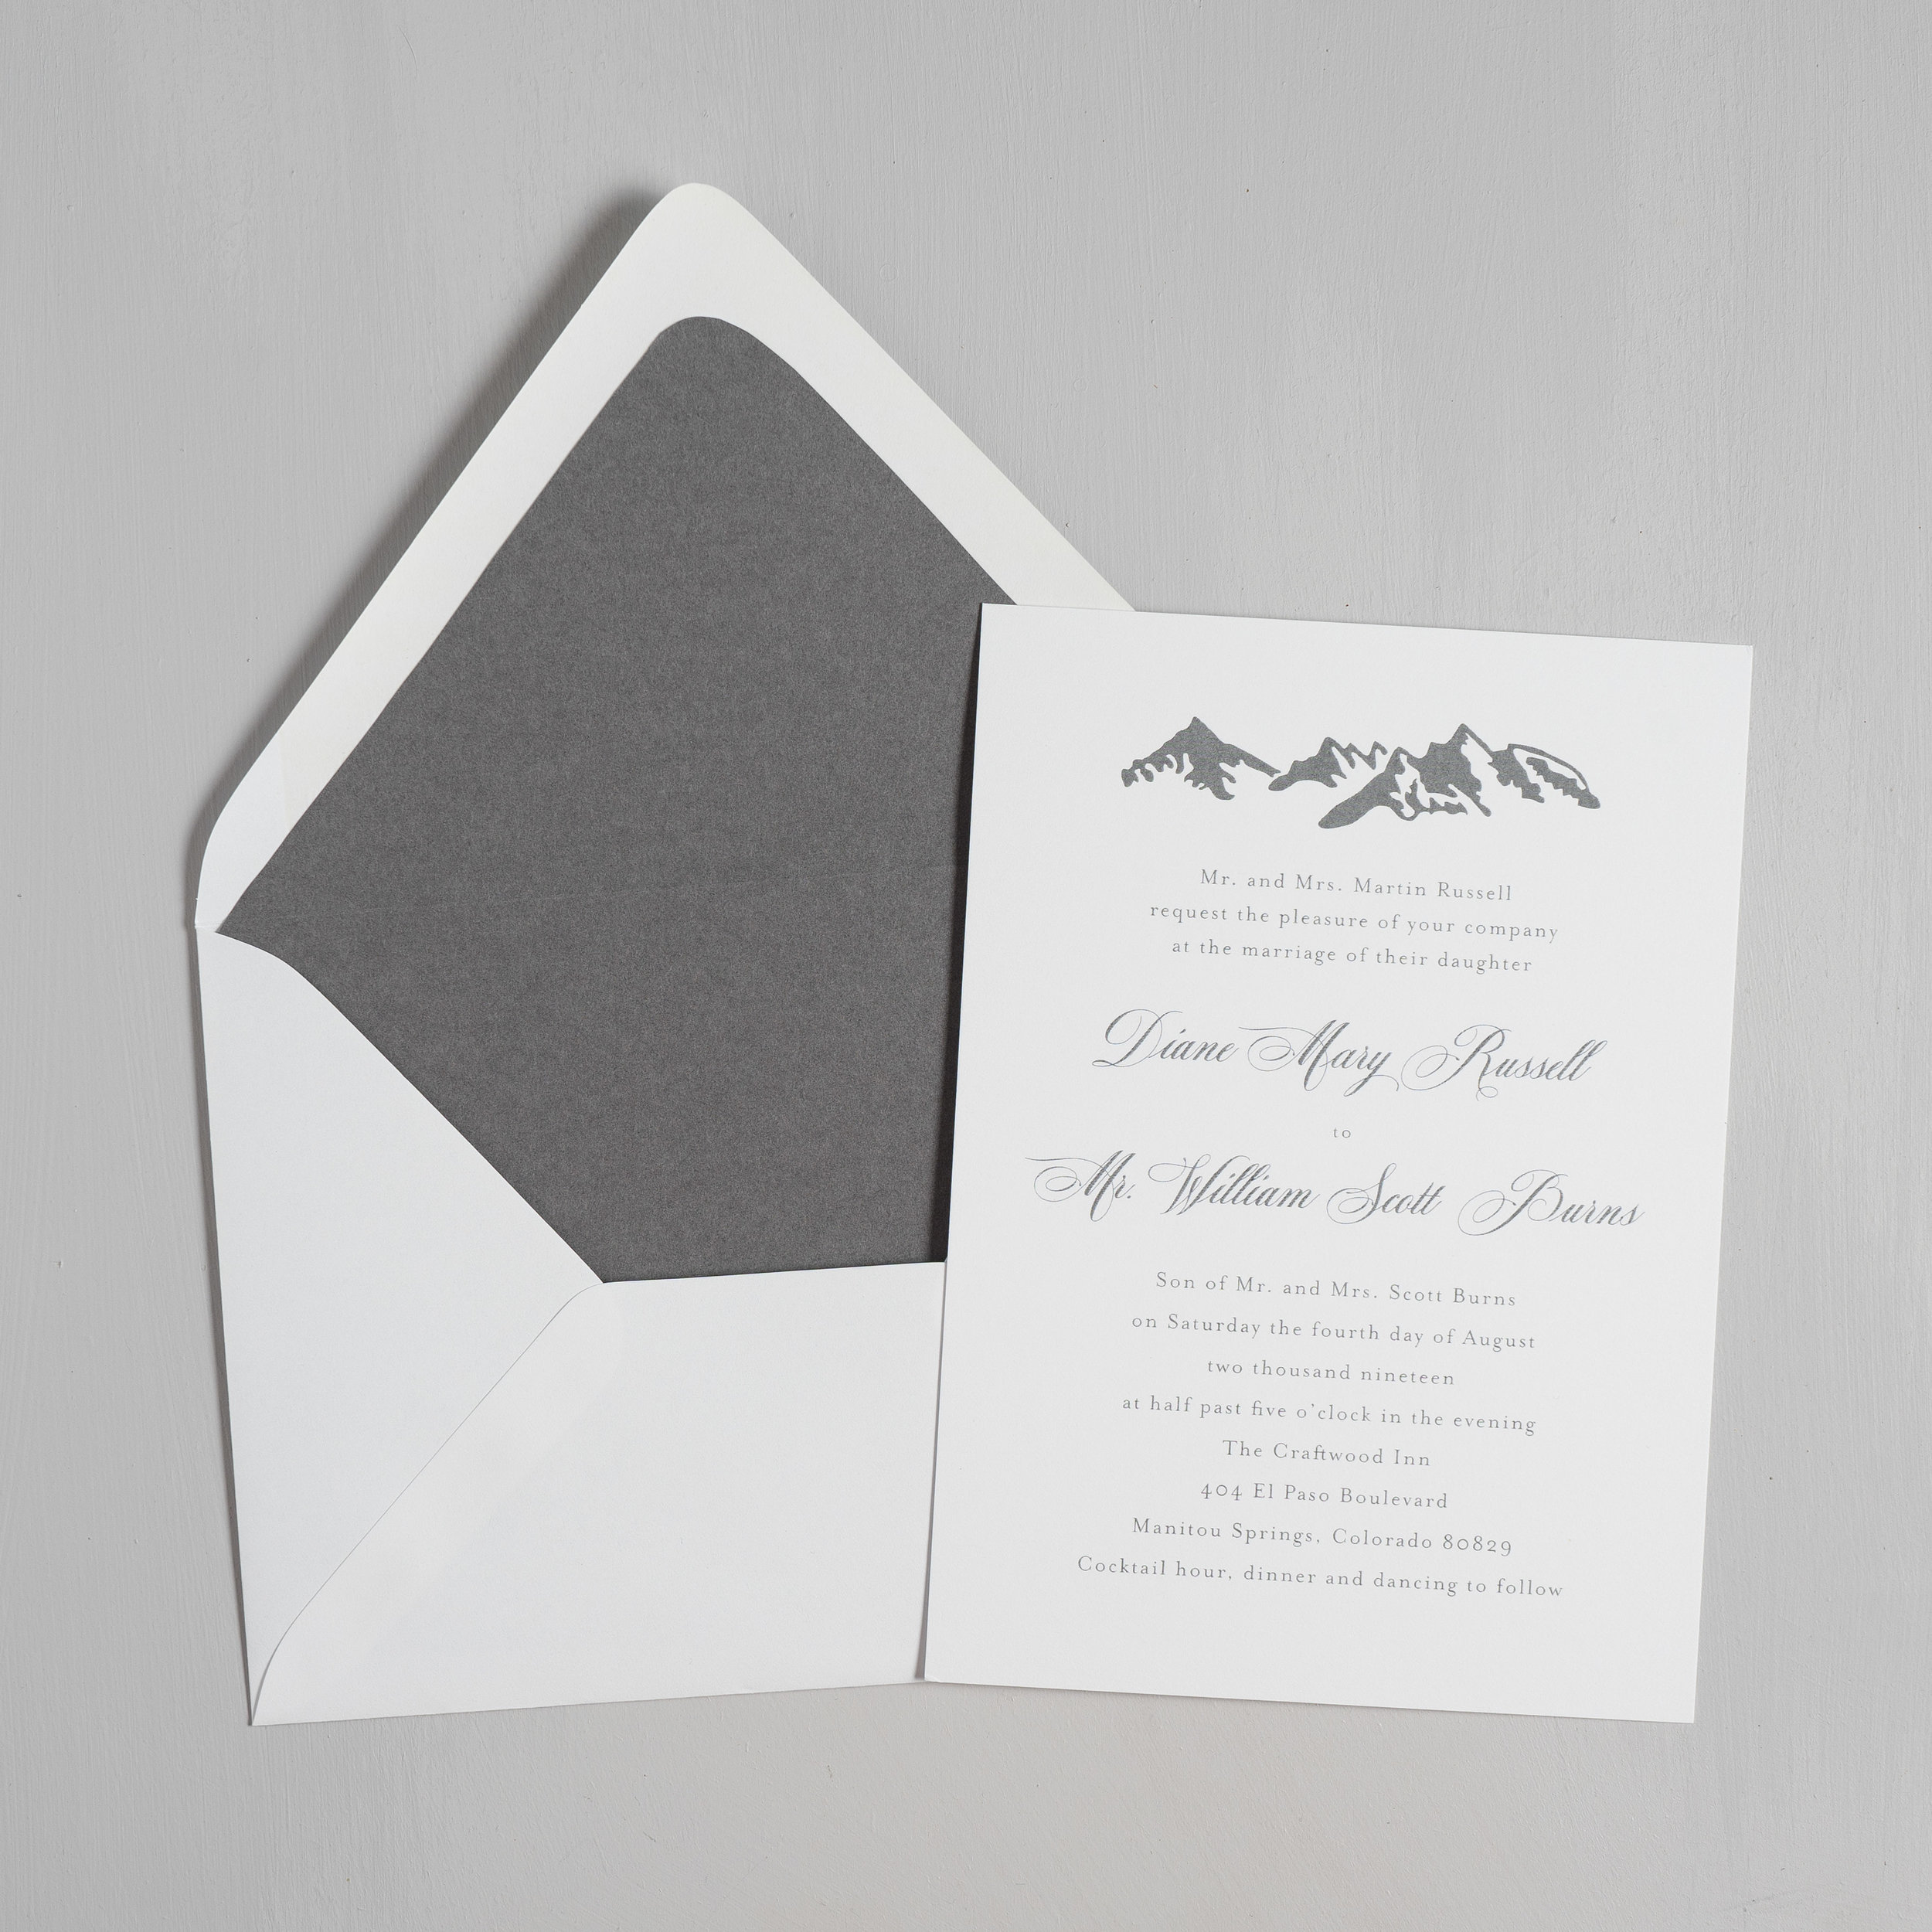 Classic Mountain Wedding Invitations by Just Jurf-5.jpg